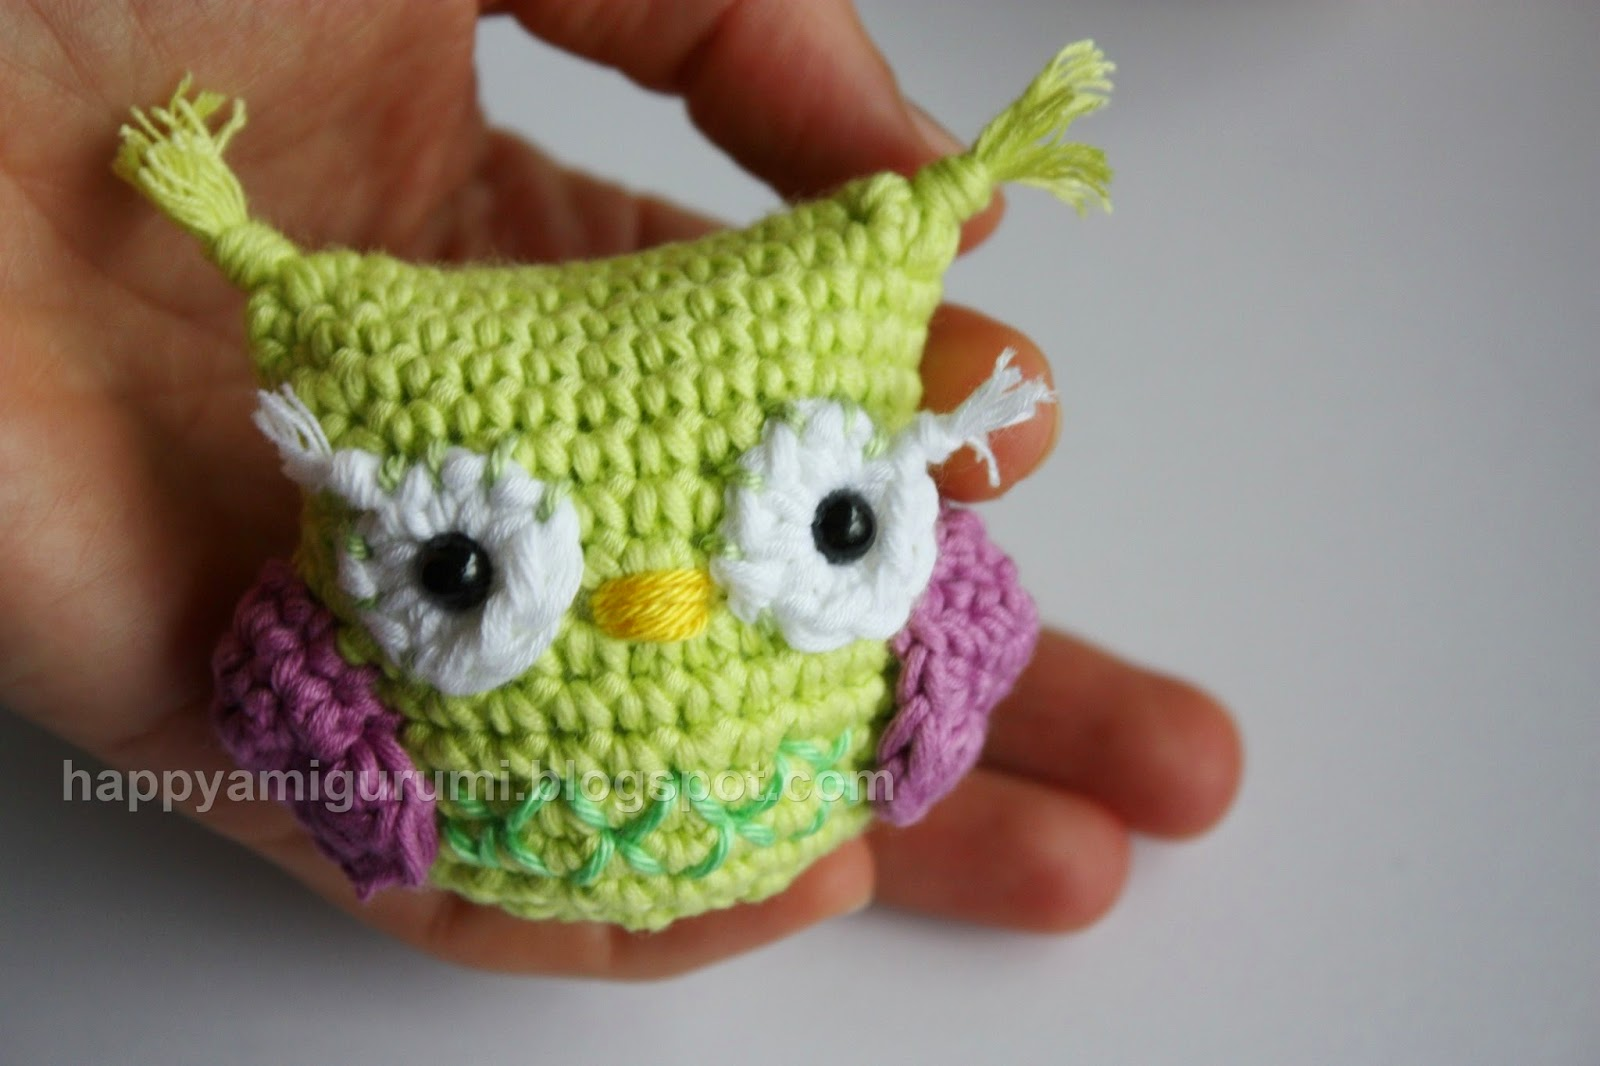 Crochet Patterns Free Owl : HAPPYAMIGURUMI: Free Amigurumi Pattern - OWL